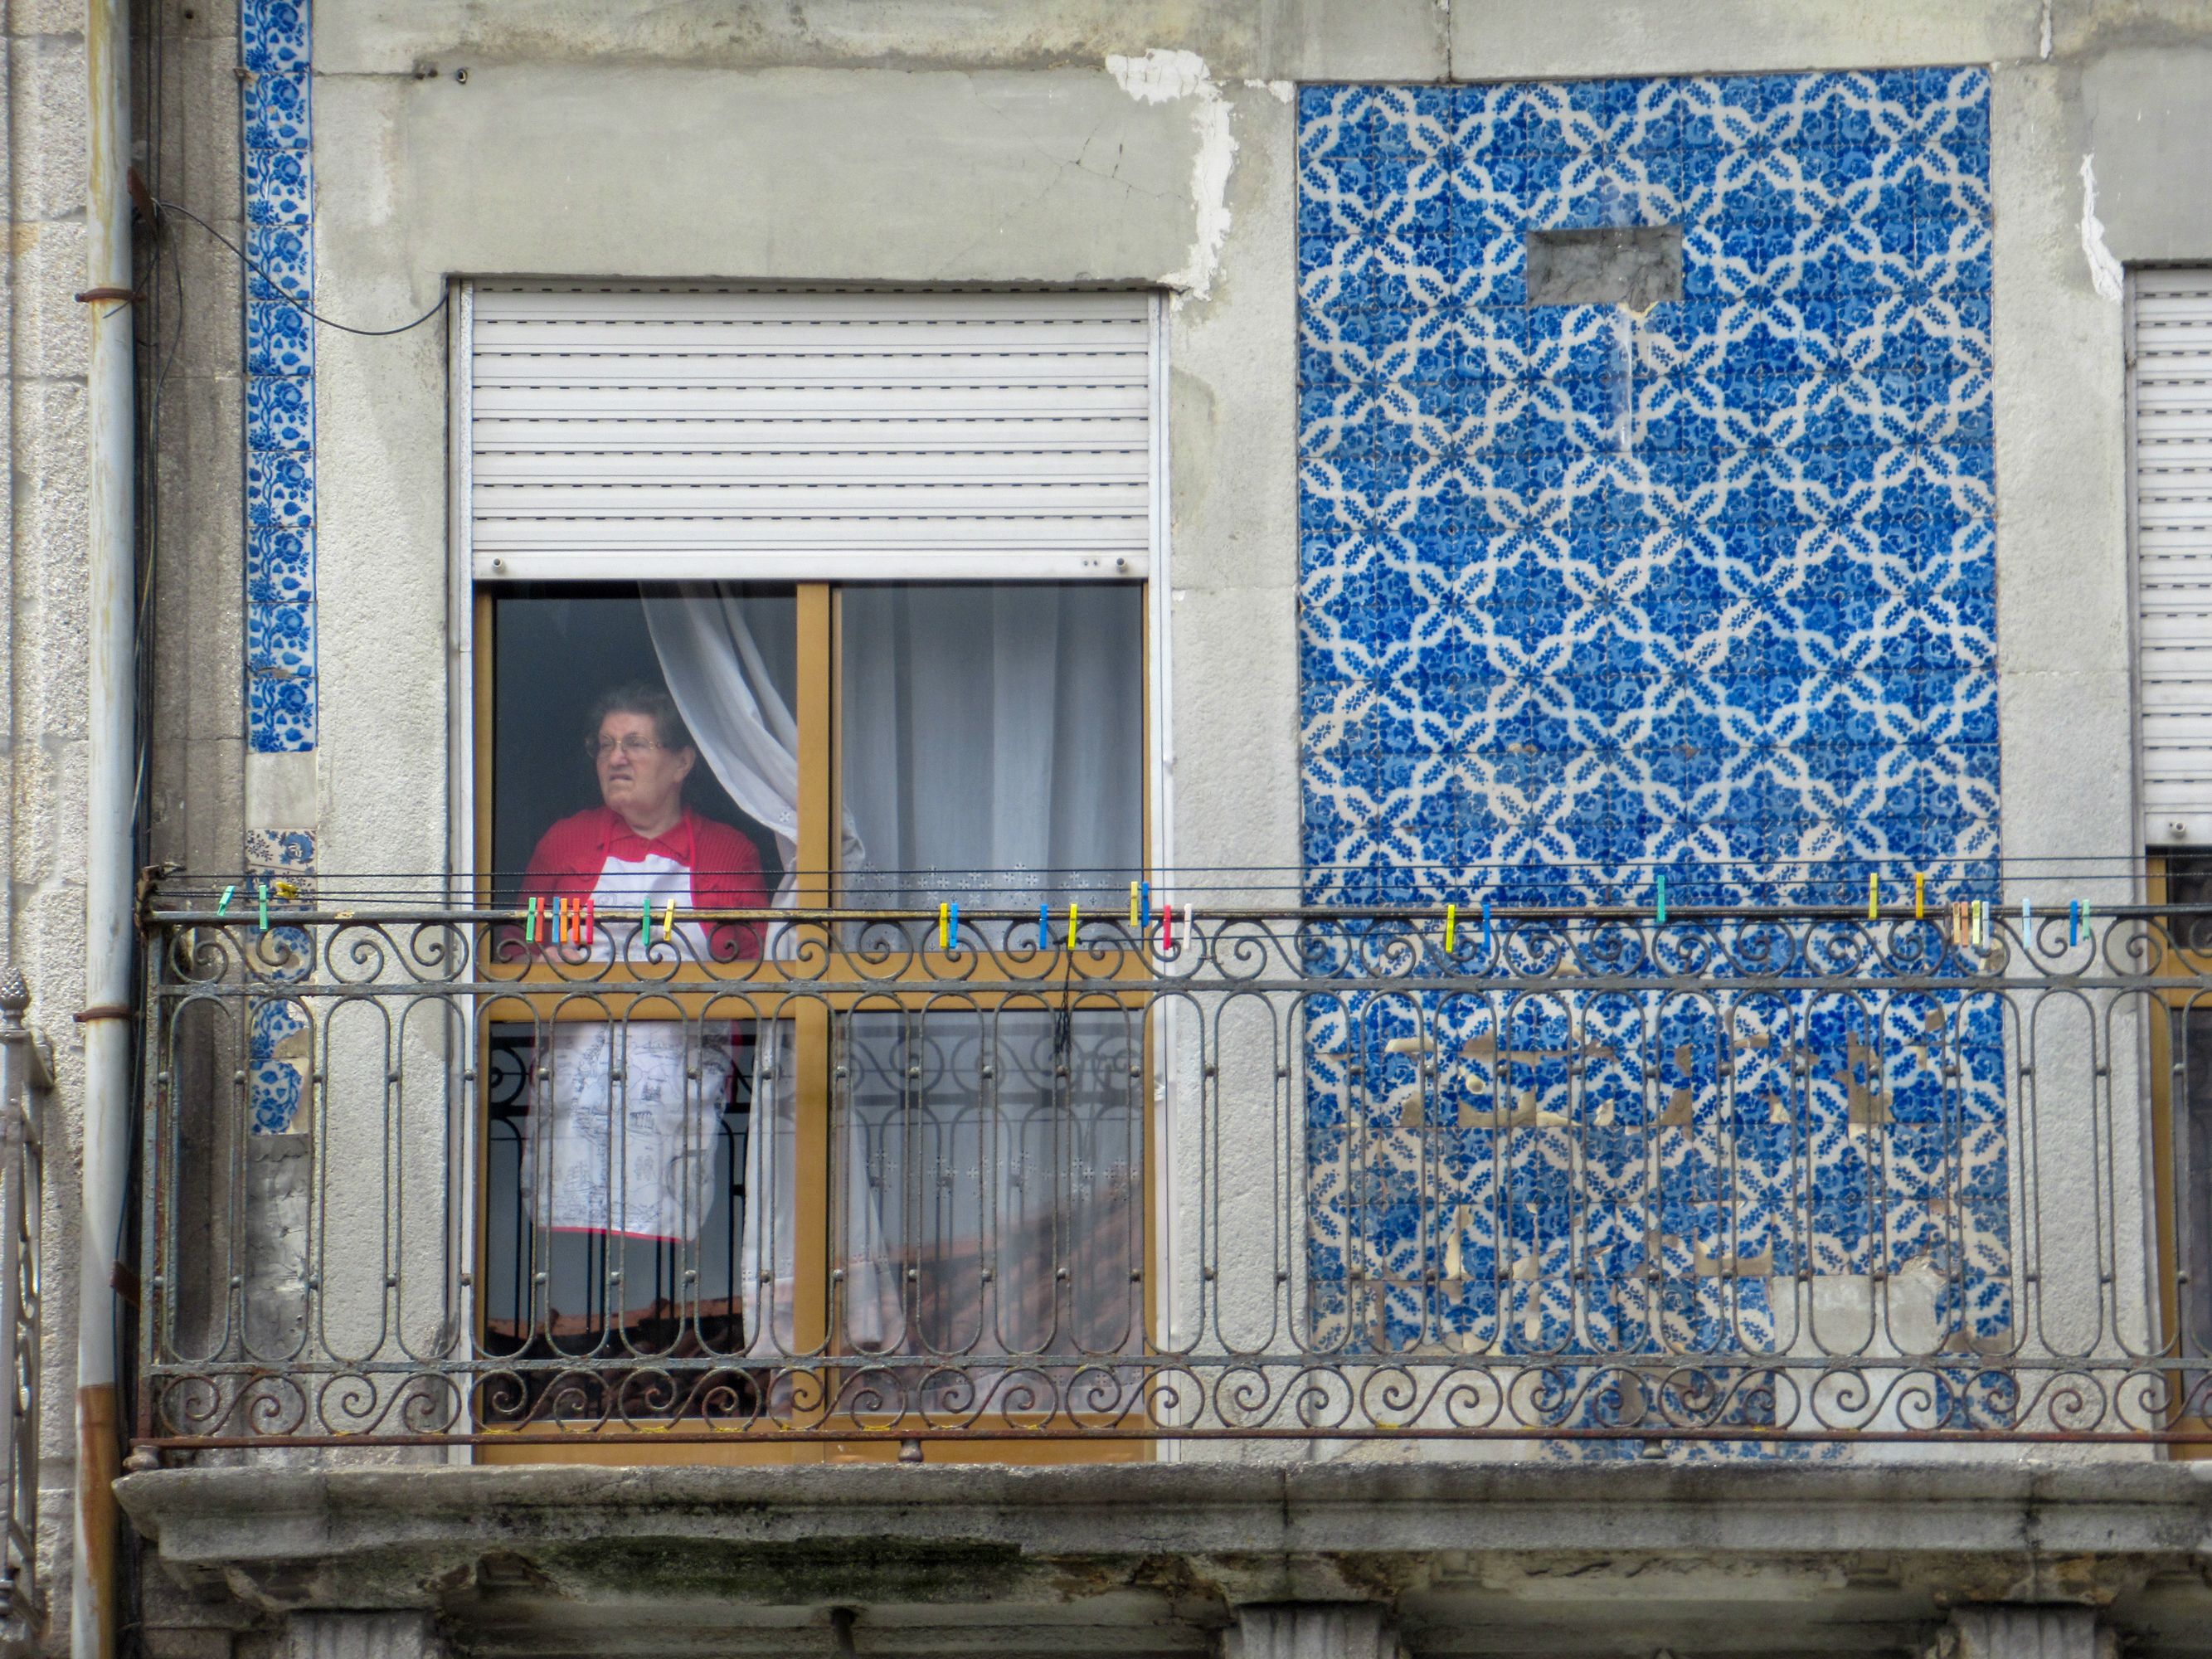 An old woman stares out her window in Portugal.